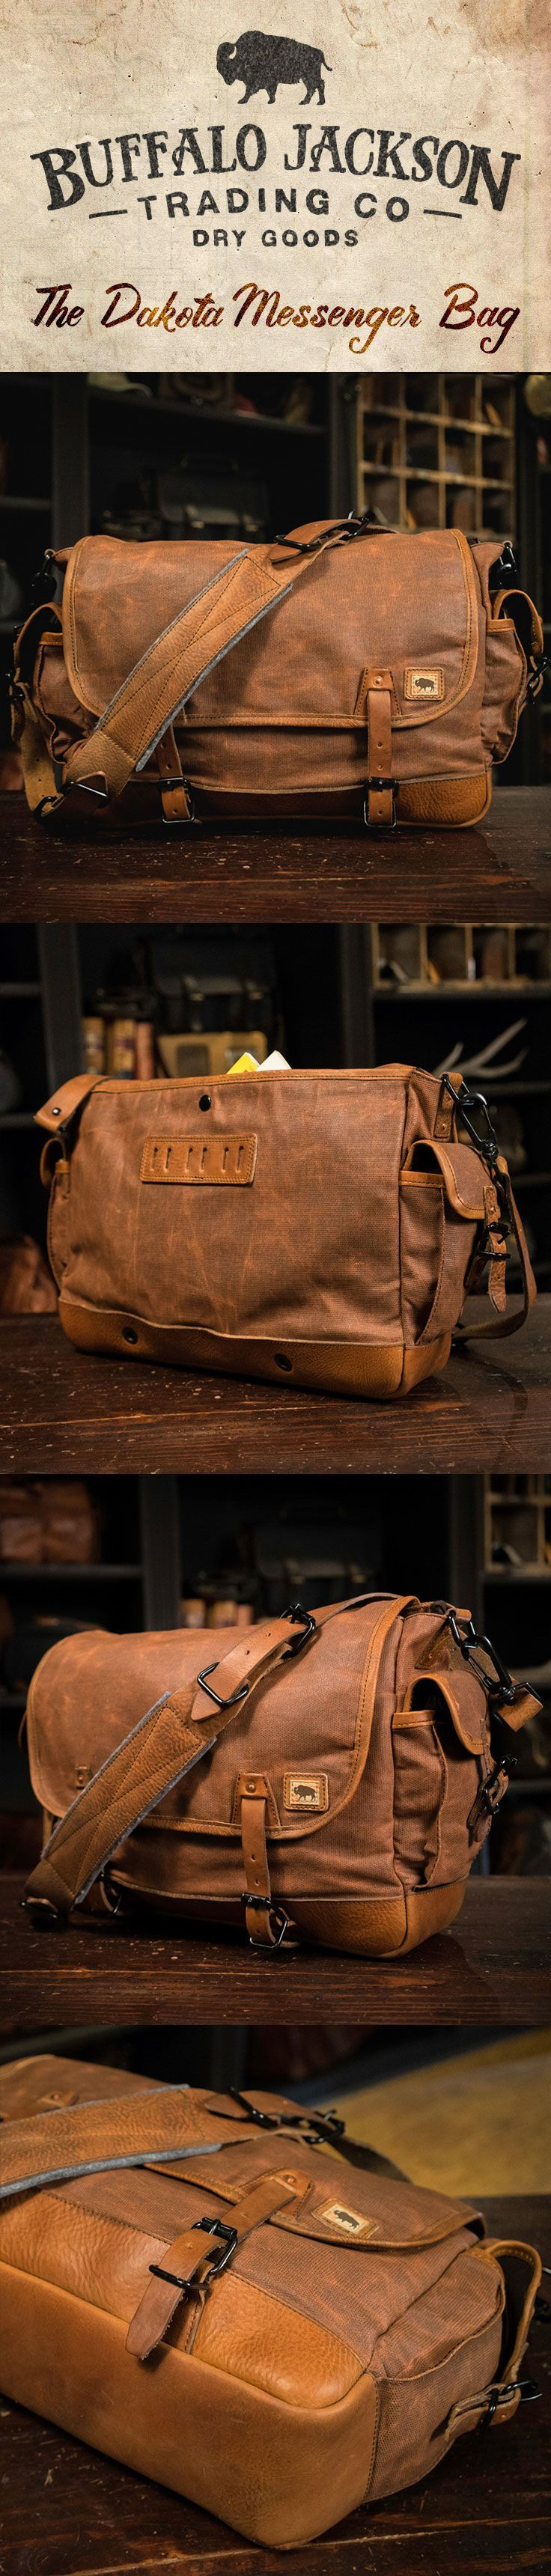 This traditional sized vintage military messenger bag is crafted from waxed canvas with leather accents, perfect for your laptop, meeting materials, and your copy of Harrison & Koosers Braided Creek (to read during your meeting). mens bags | vintage satchel bags